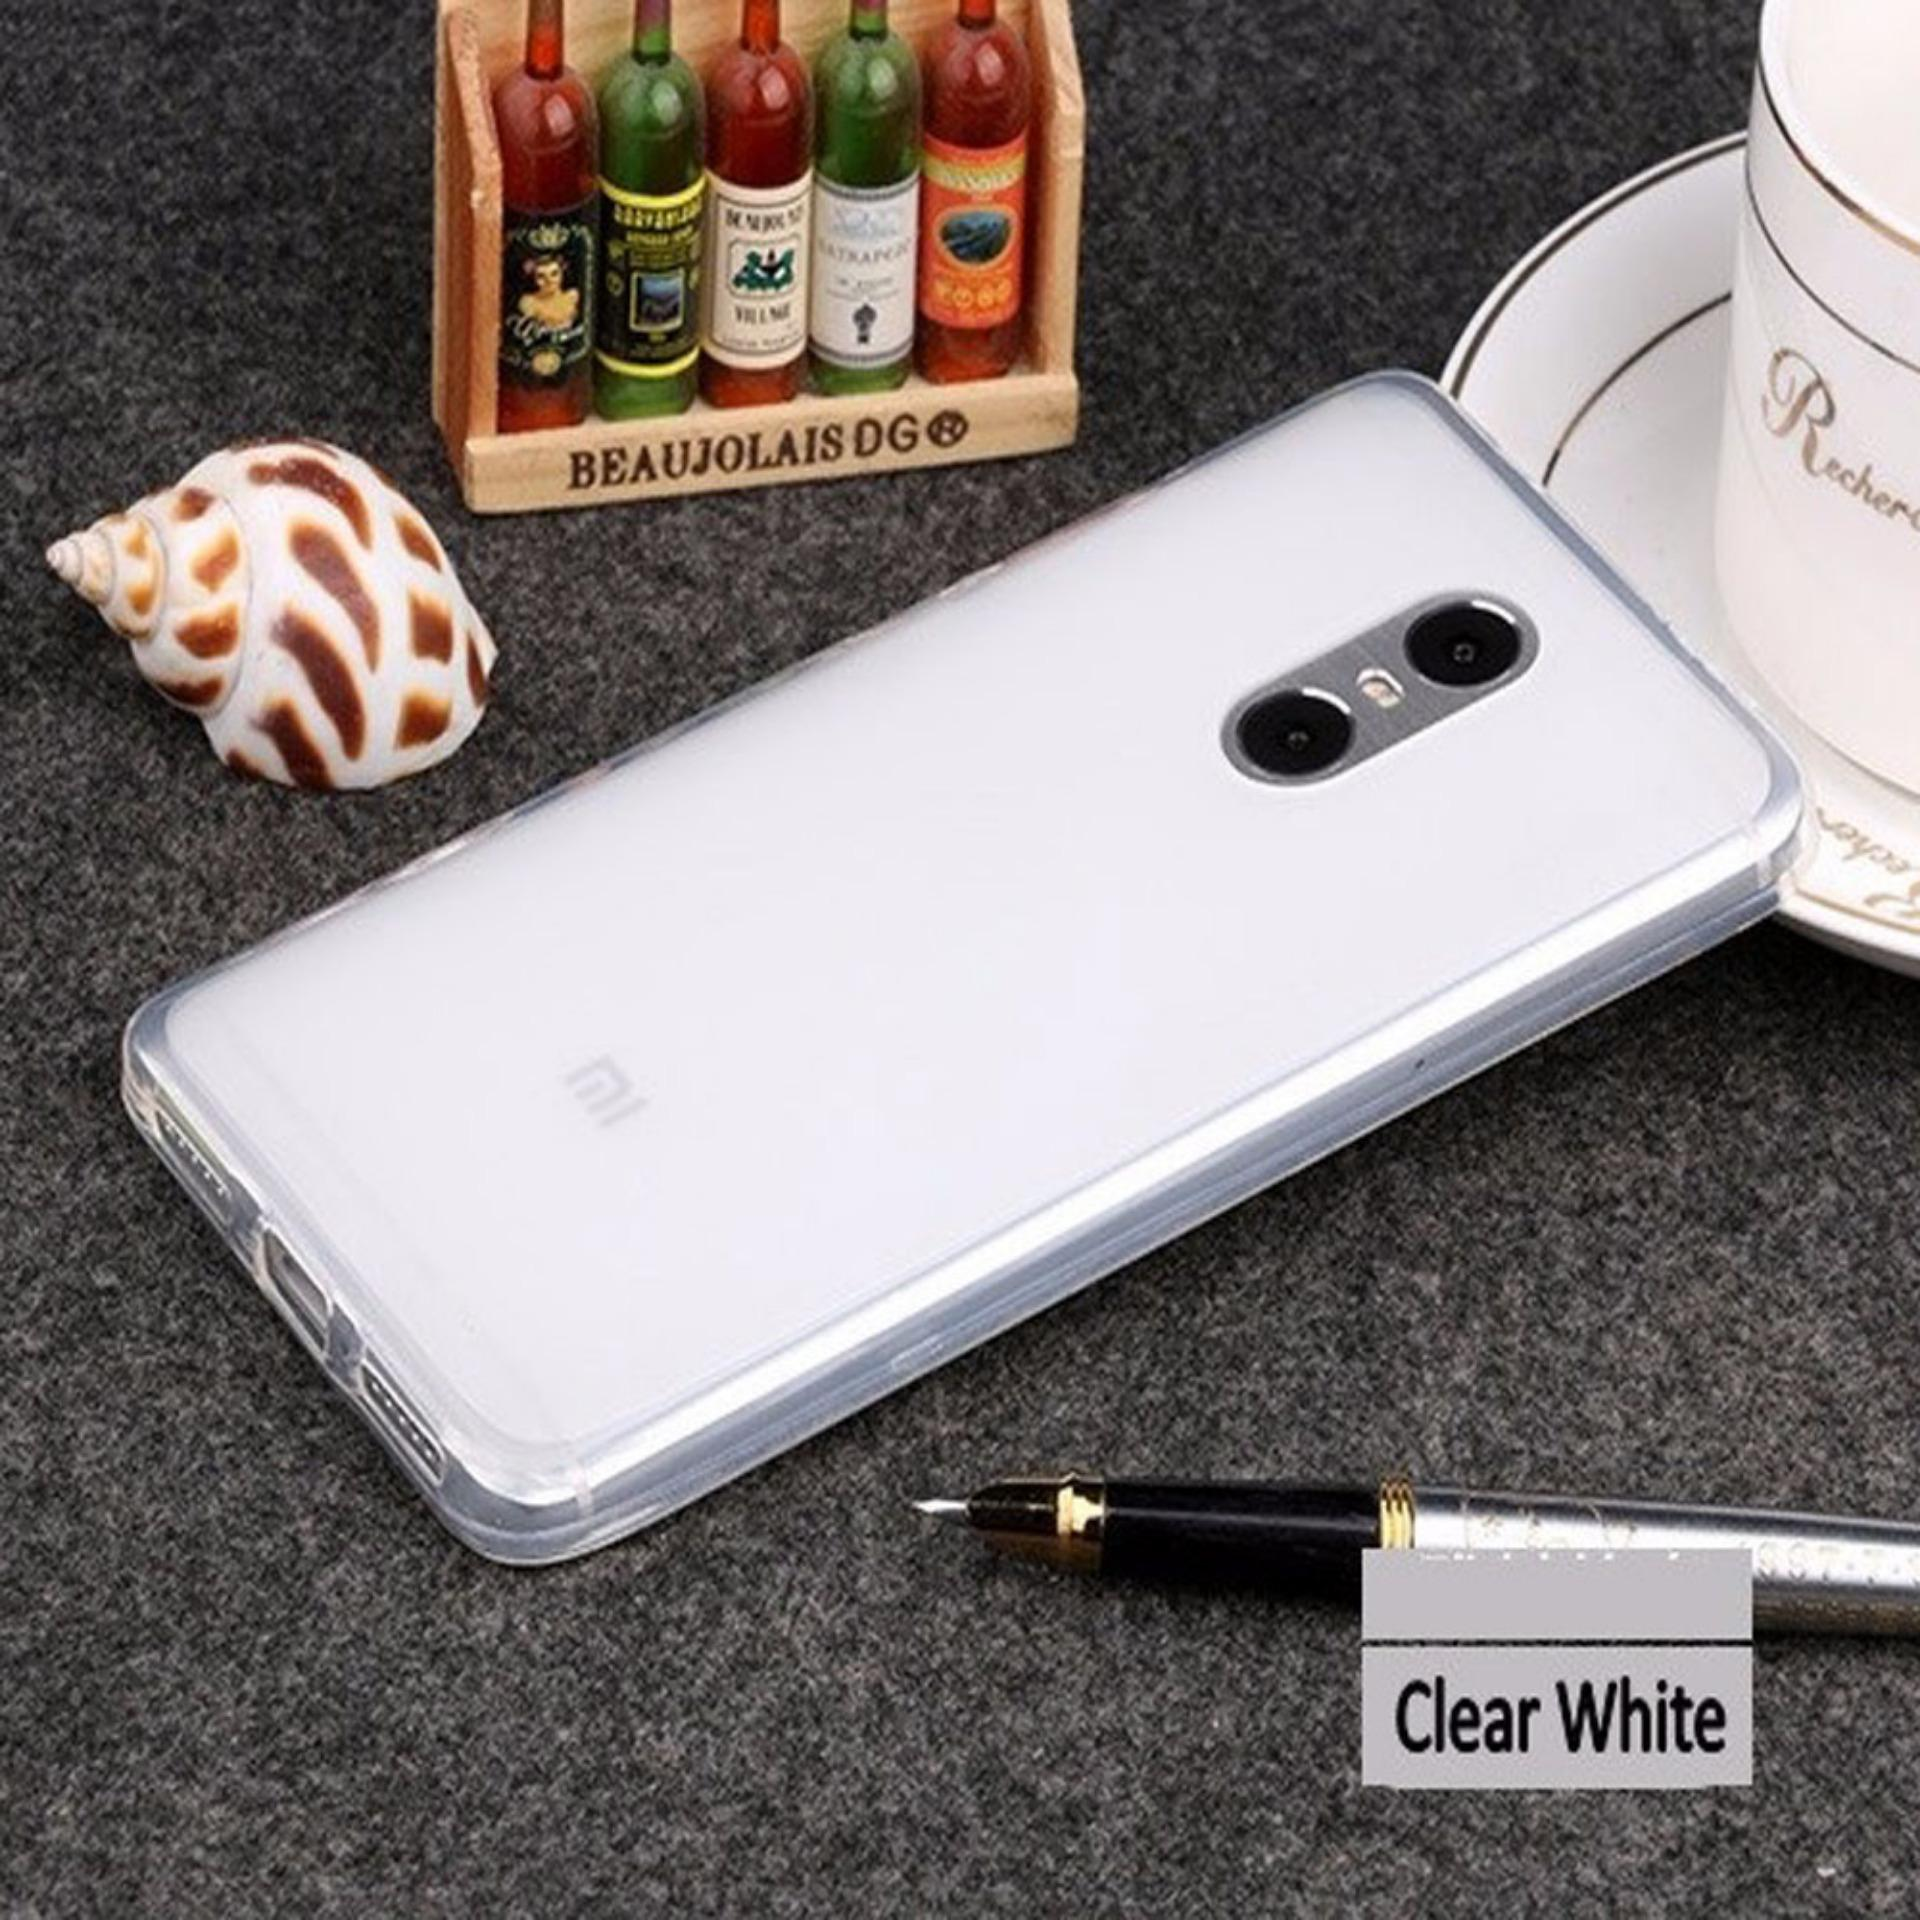 Case Silicone Tpu For Xiaomi Redmi Note 4 4x Utrathin Peonia Electroplating Transparent Ultrathin 5 Pro Ai Hot Deals Beauty Jelly Luxury Softcase Anti Jamur Air